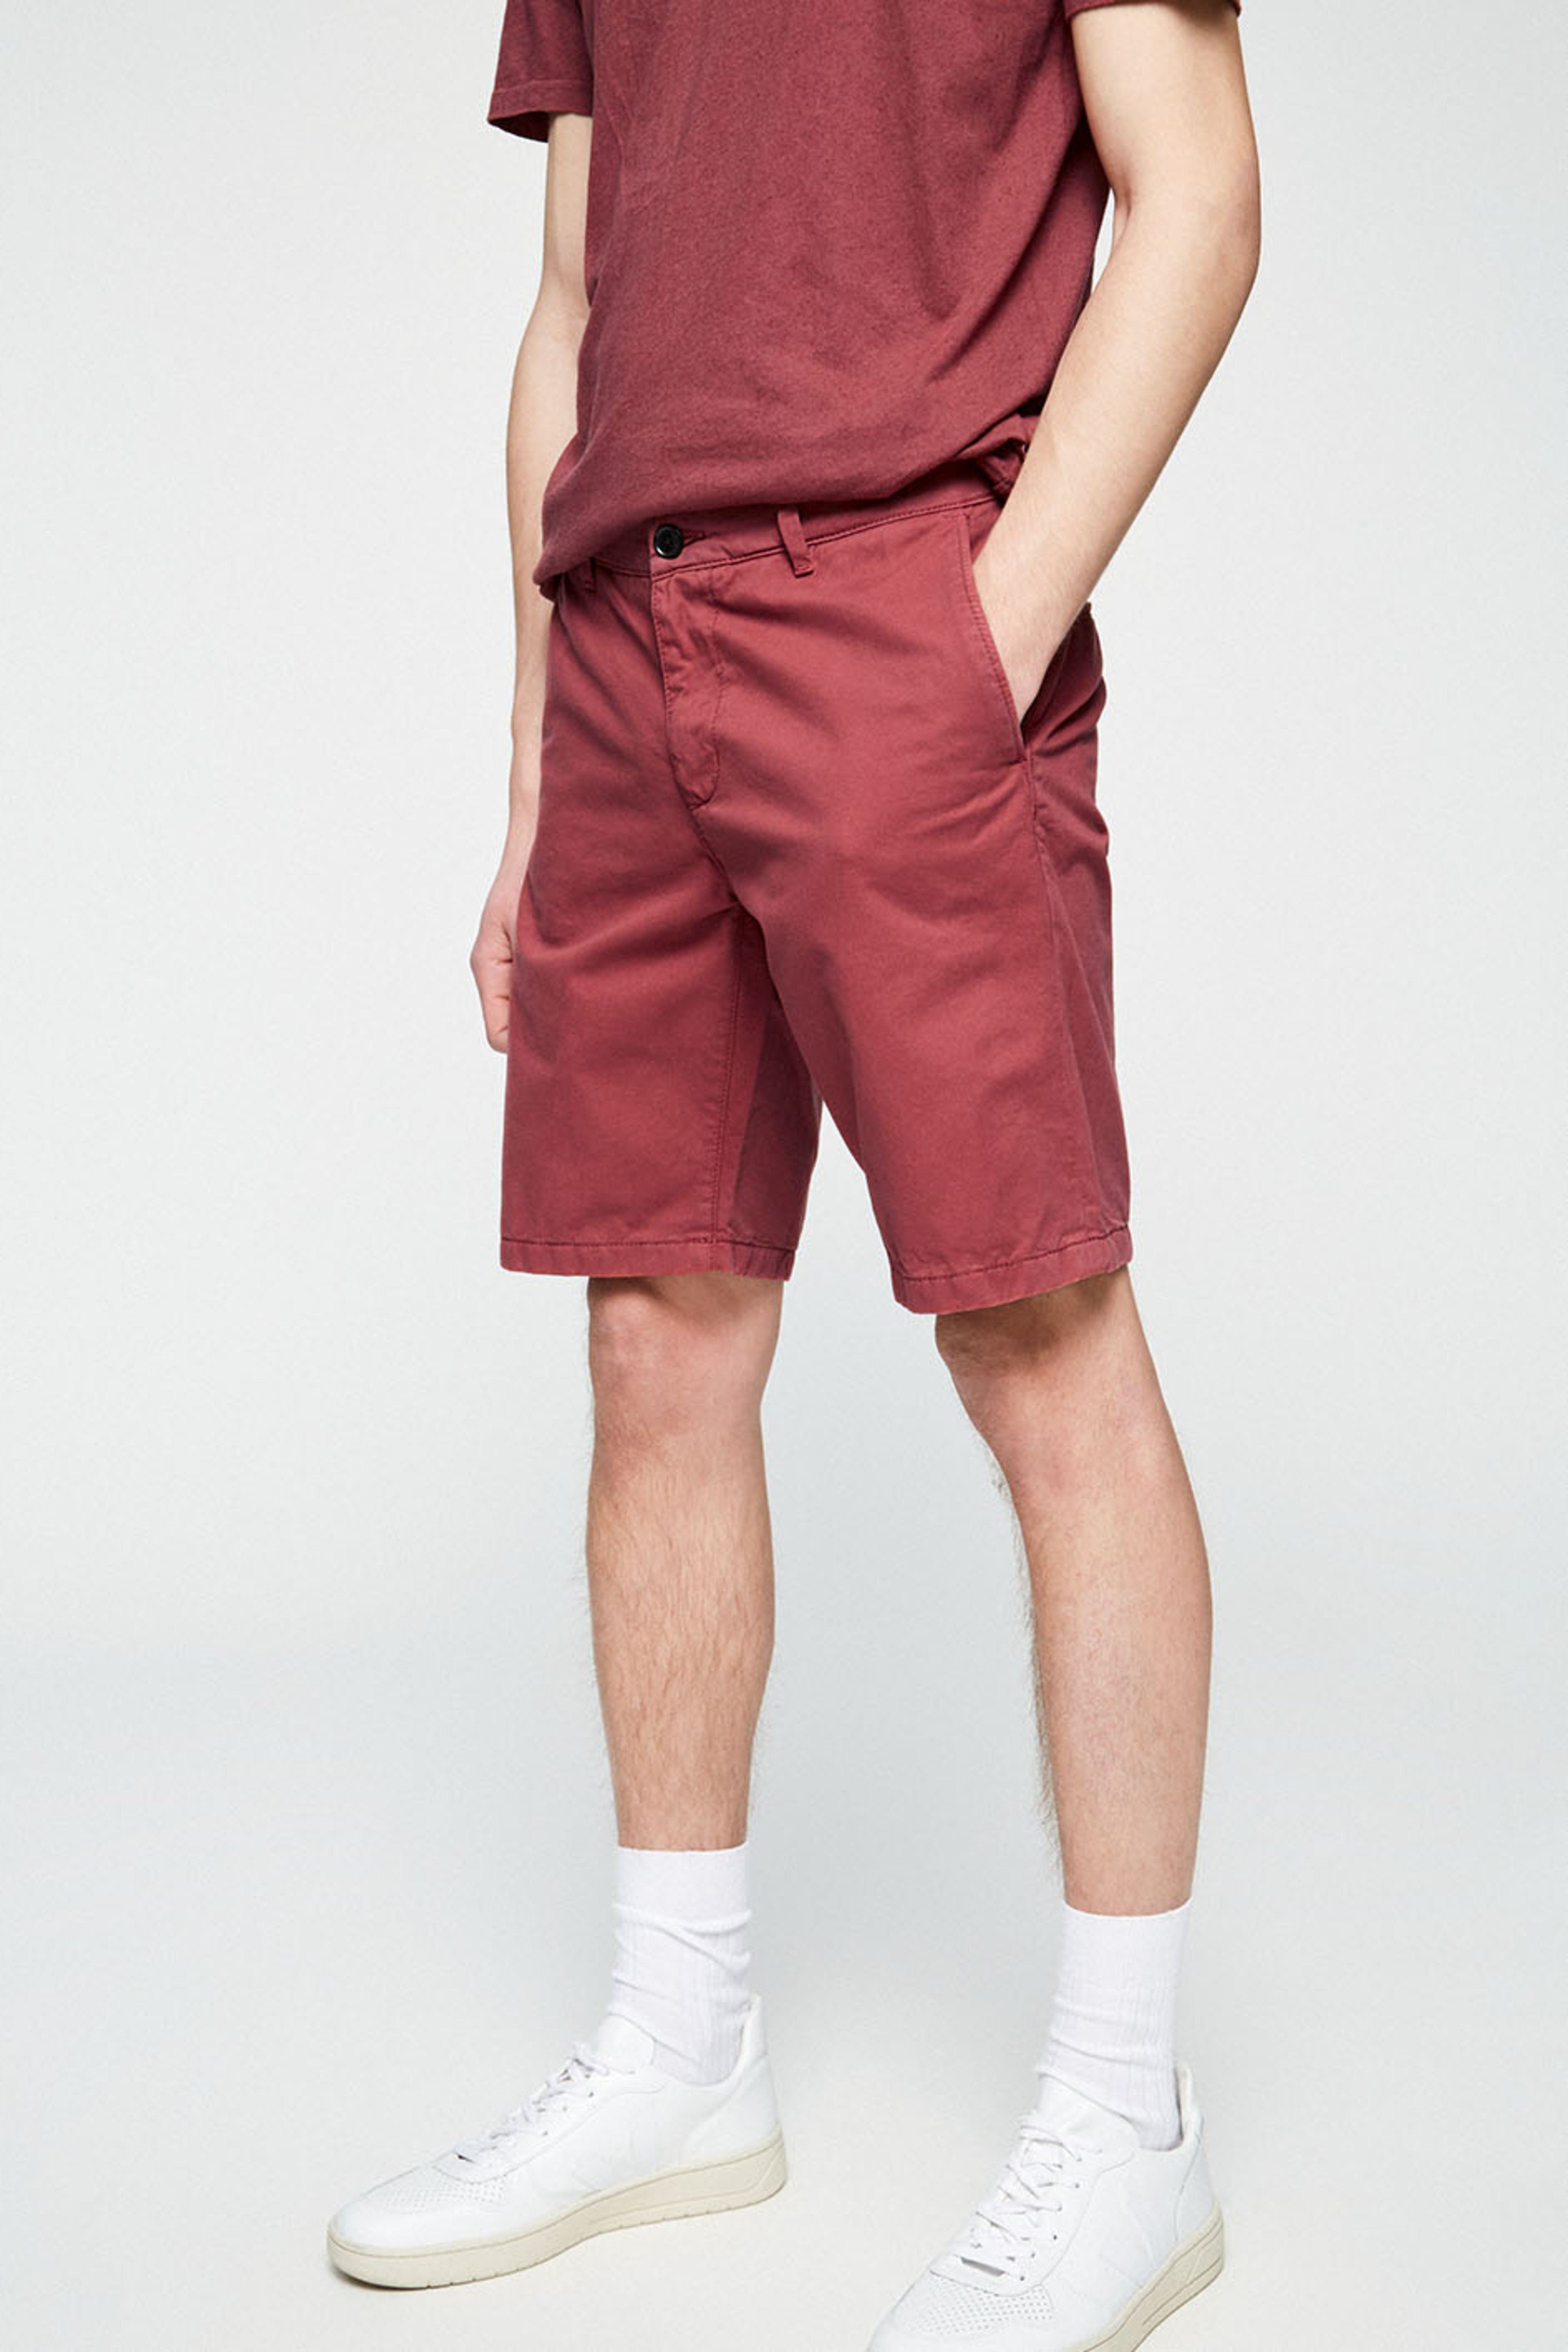 Shorts Brucaa Dunkelrot from LOVECO